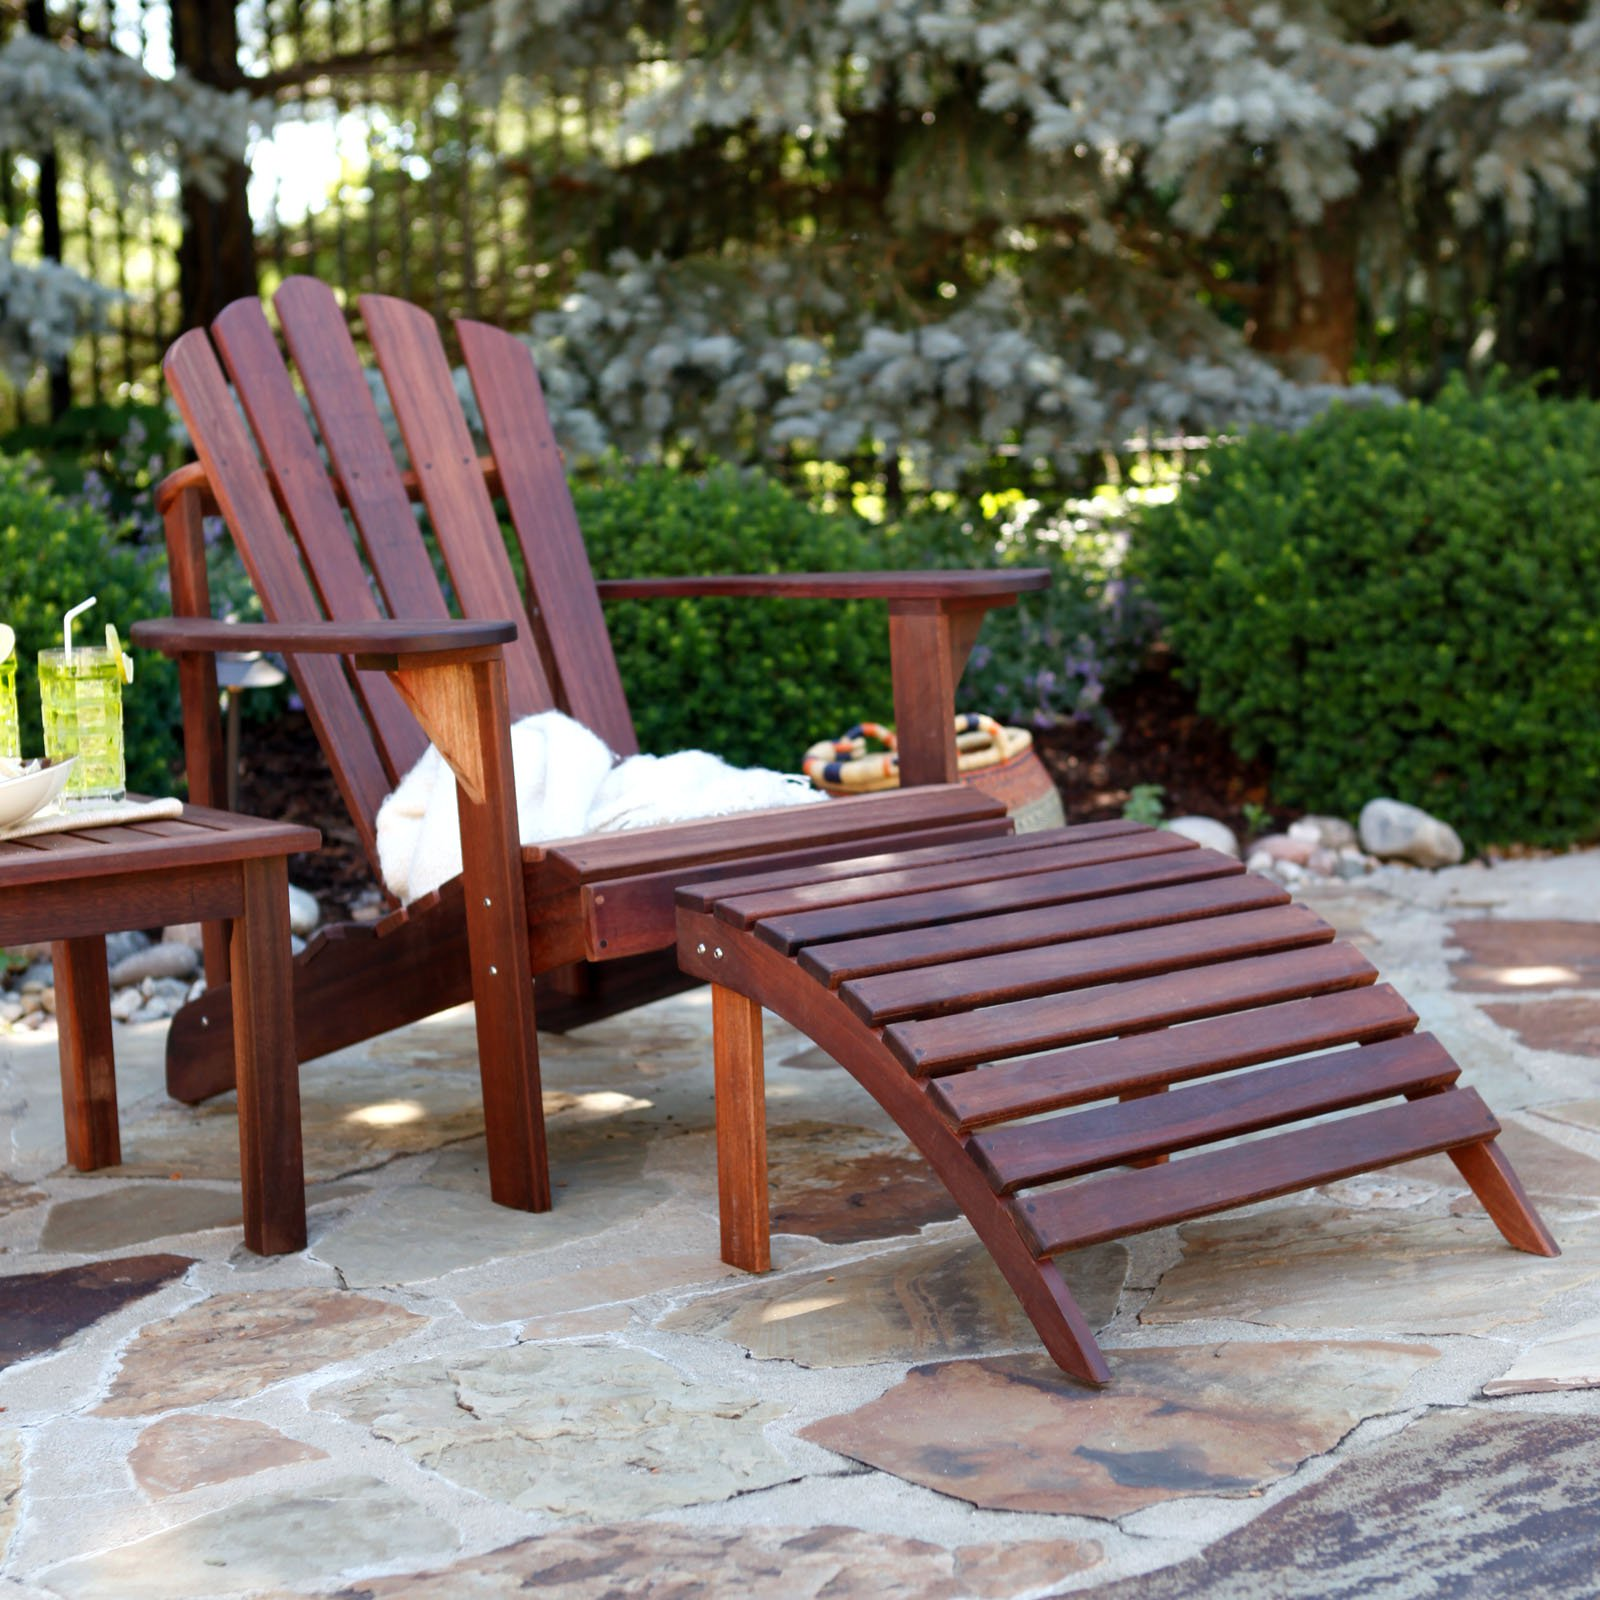 Exceptionnel Belham Living Richmond Deluxe Adirondack Chair And Ottoman With Side Table  3 Piece Set   Walmart.com